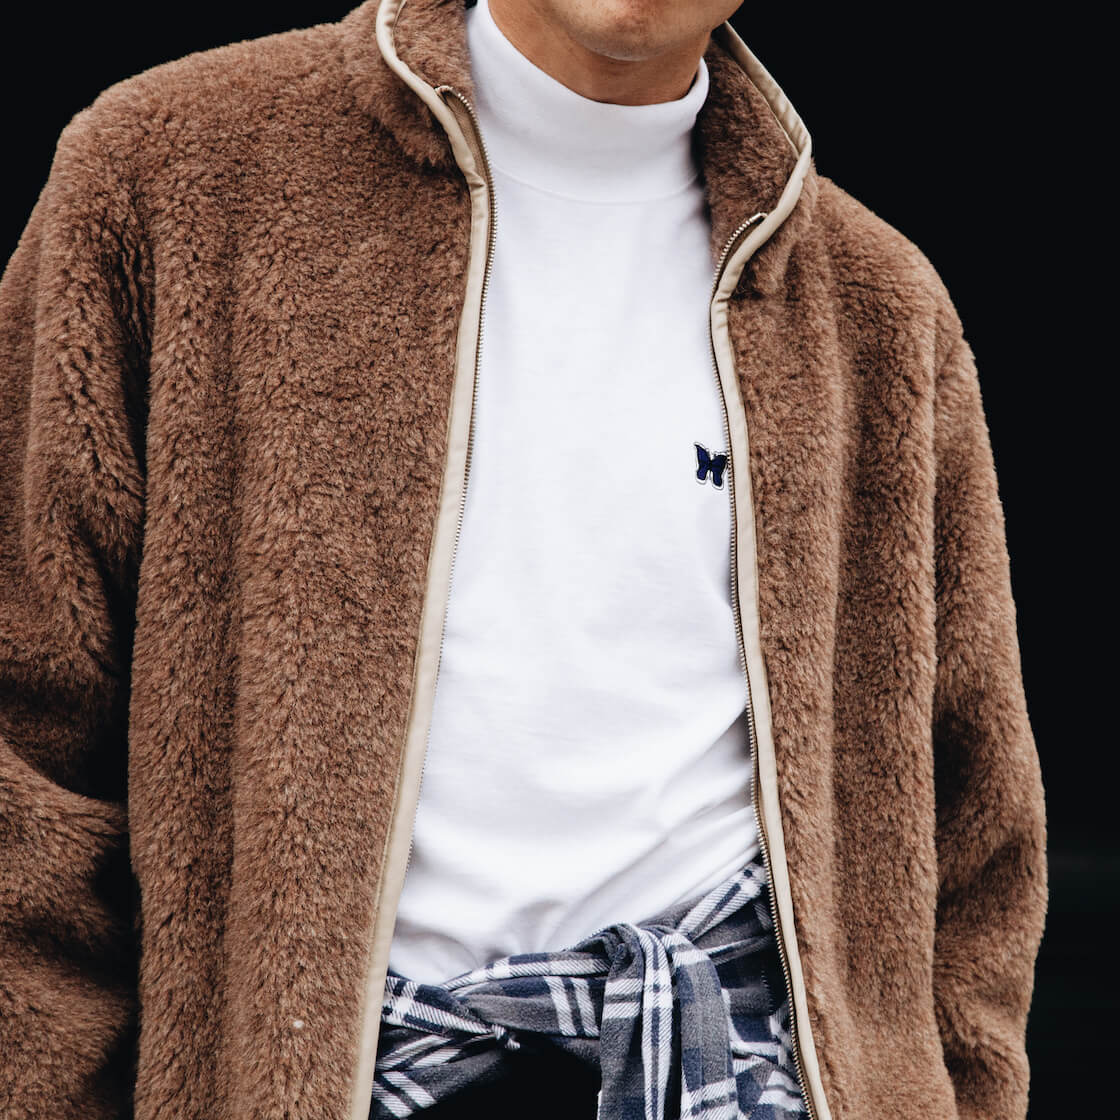 Needles clothing japan shaggy shearling jacket and mock neck tee on body